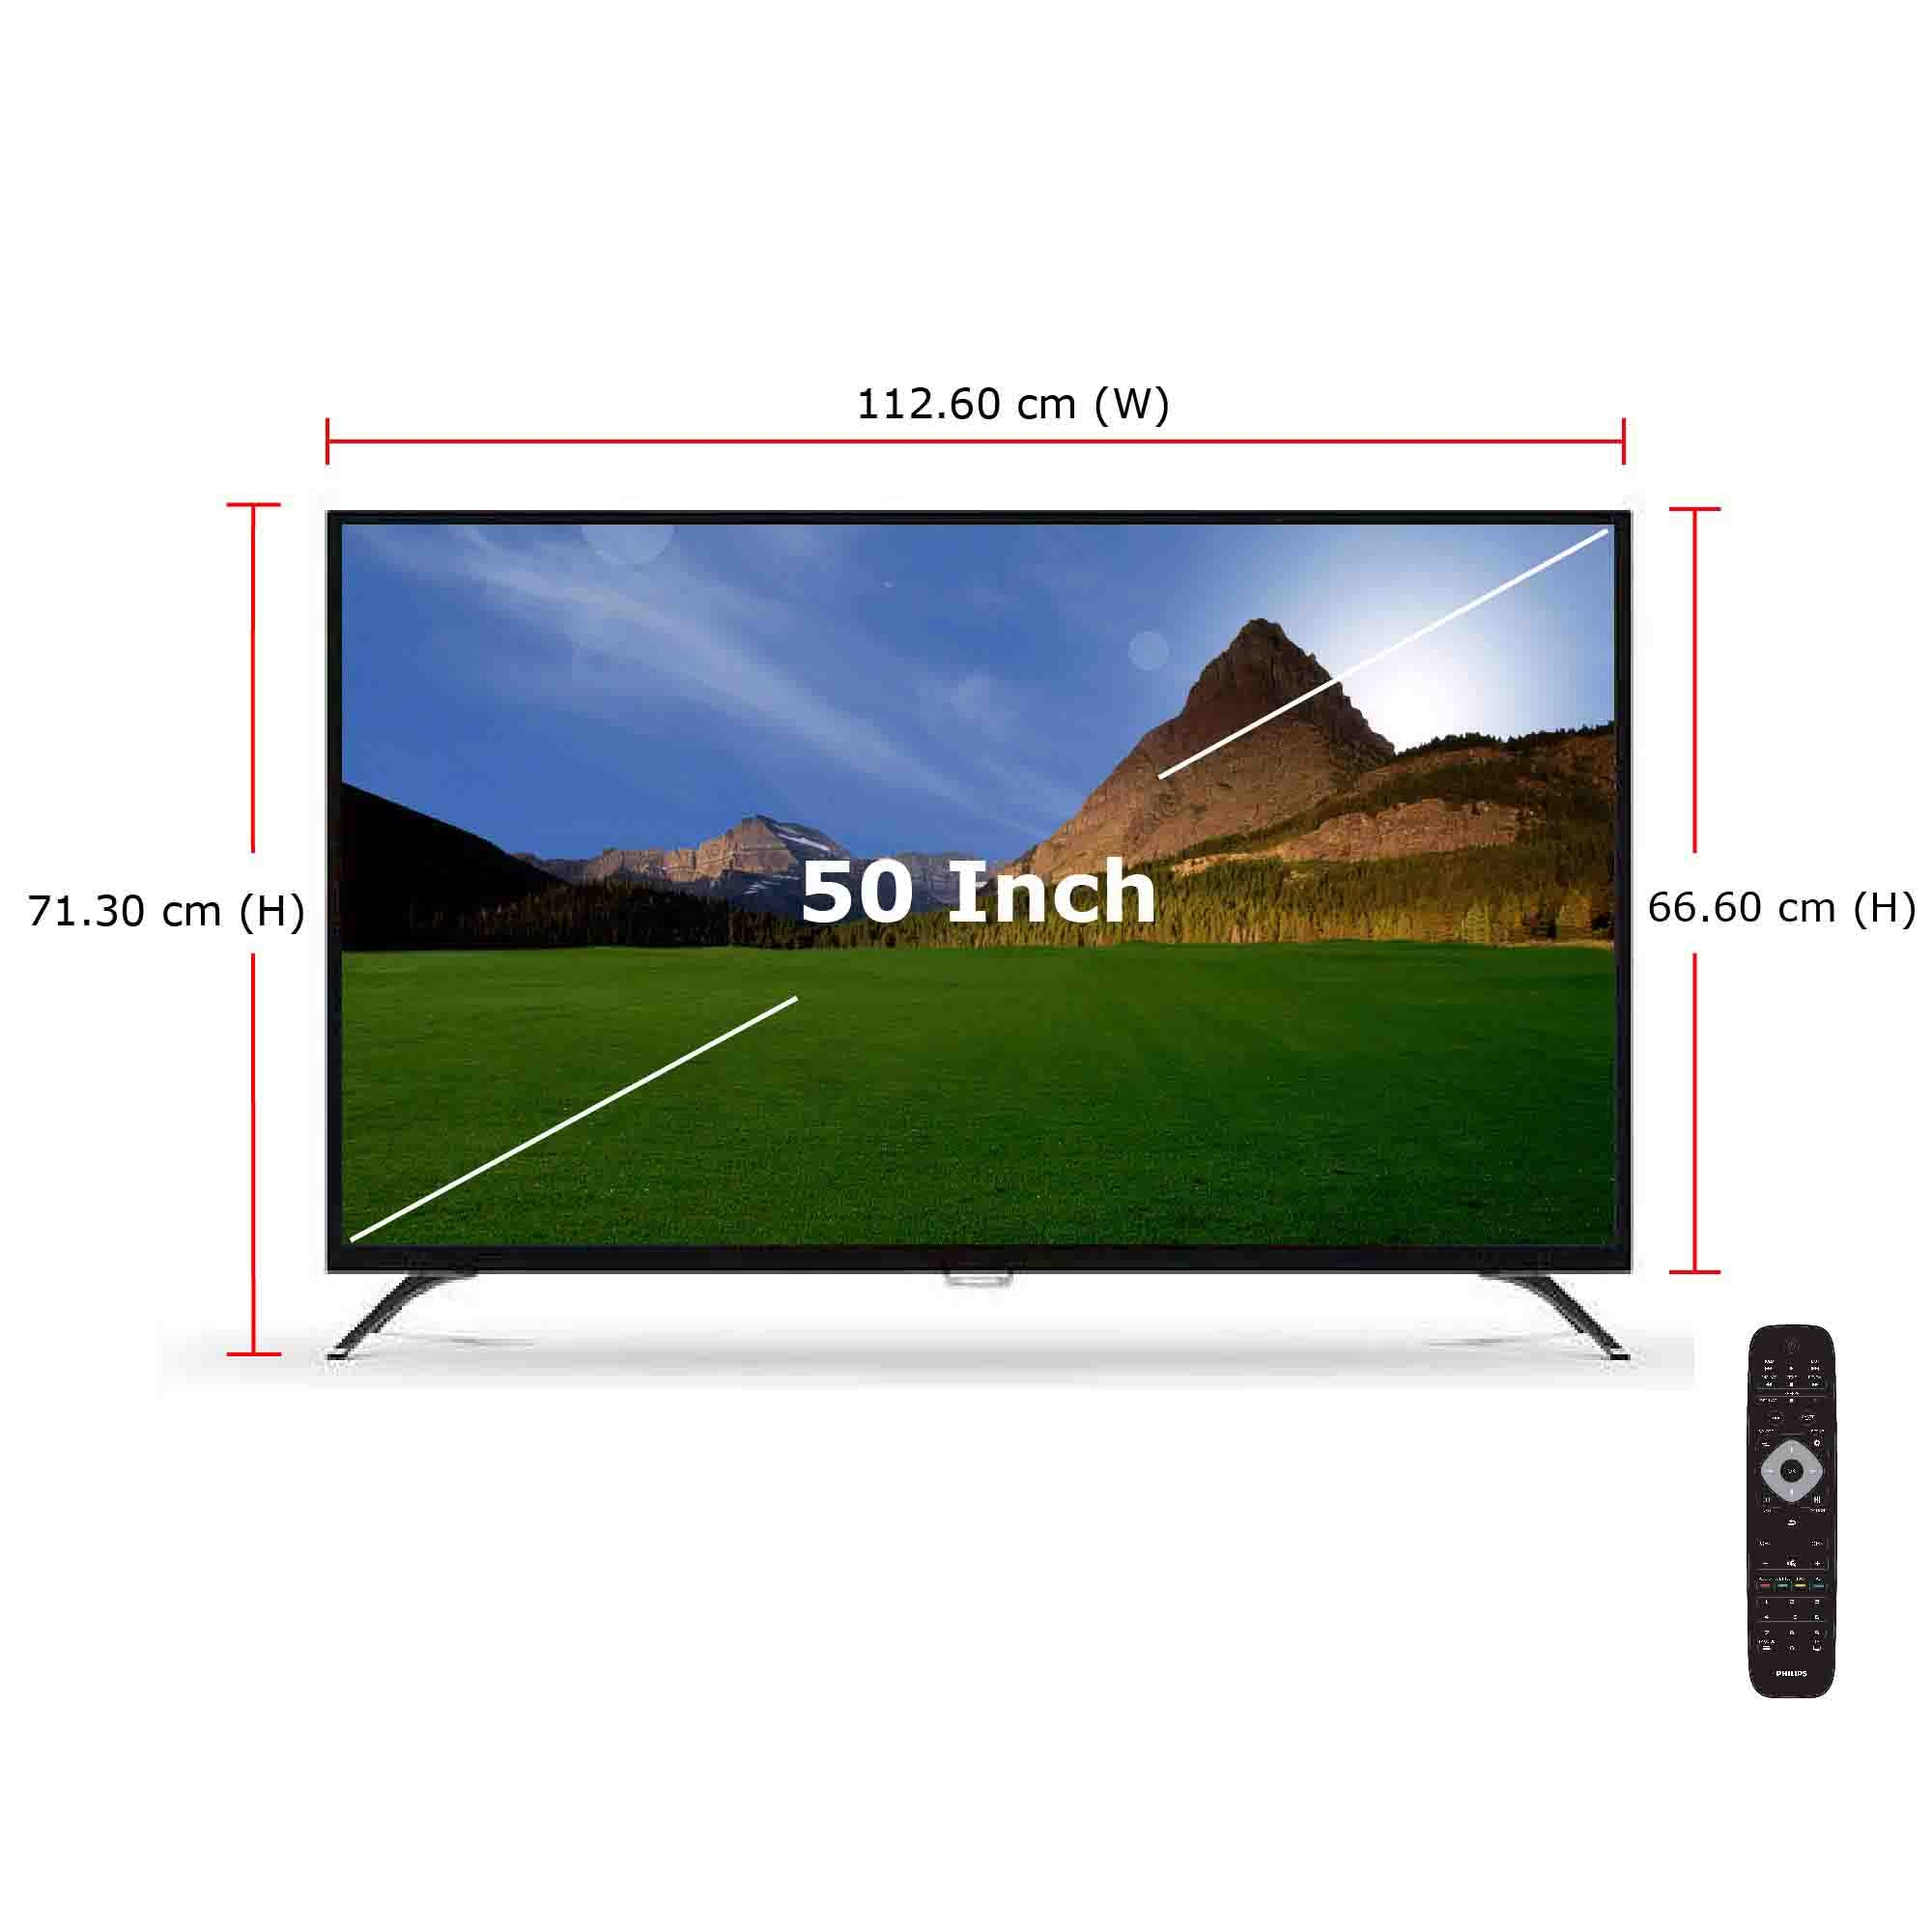 Philips TV 50PUT6002 (50 Inch) 3 HD (end 3/12/2021 12:00 AM)